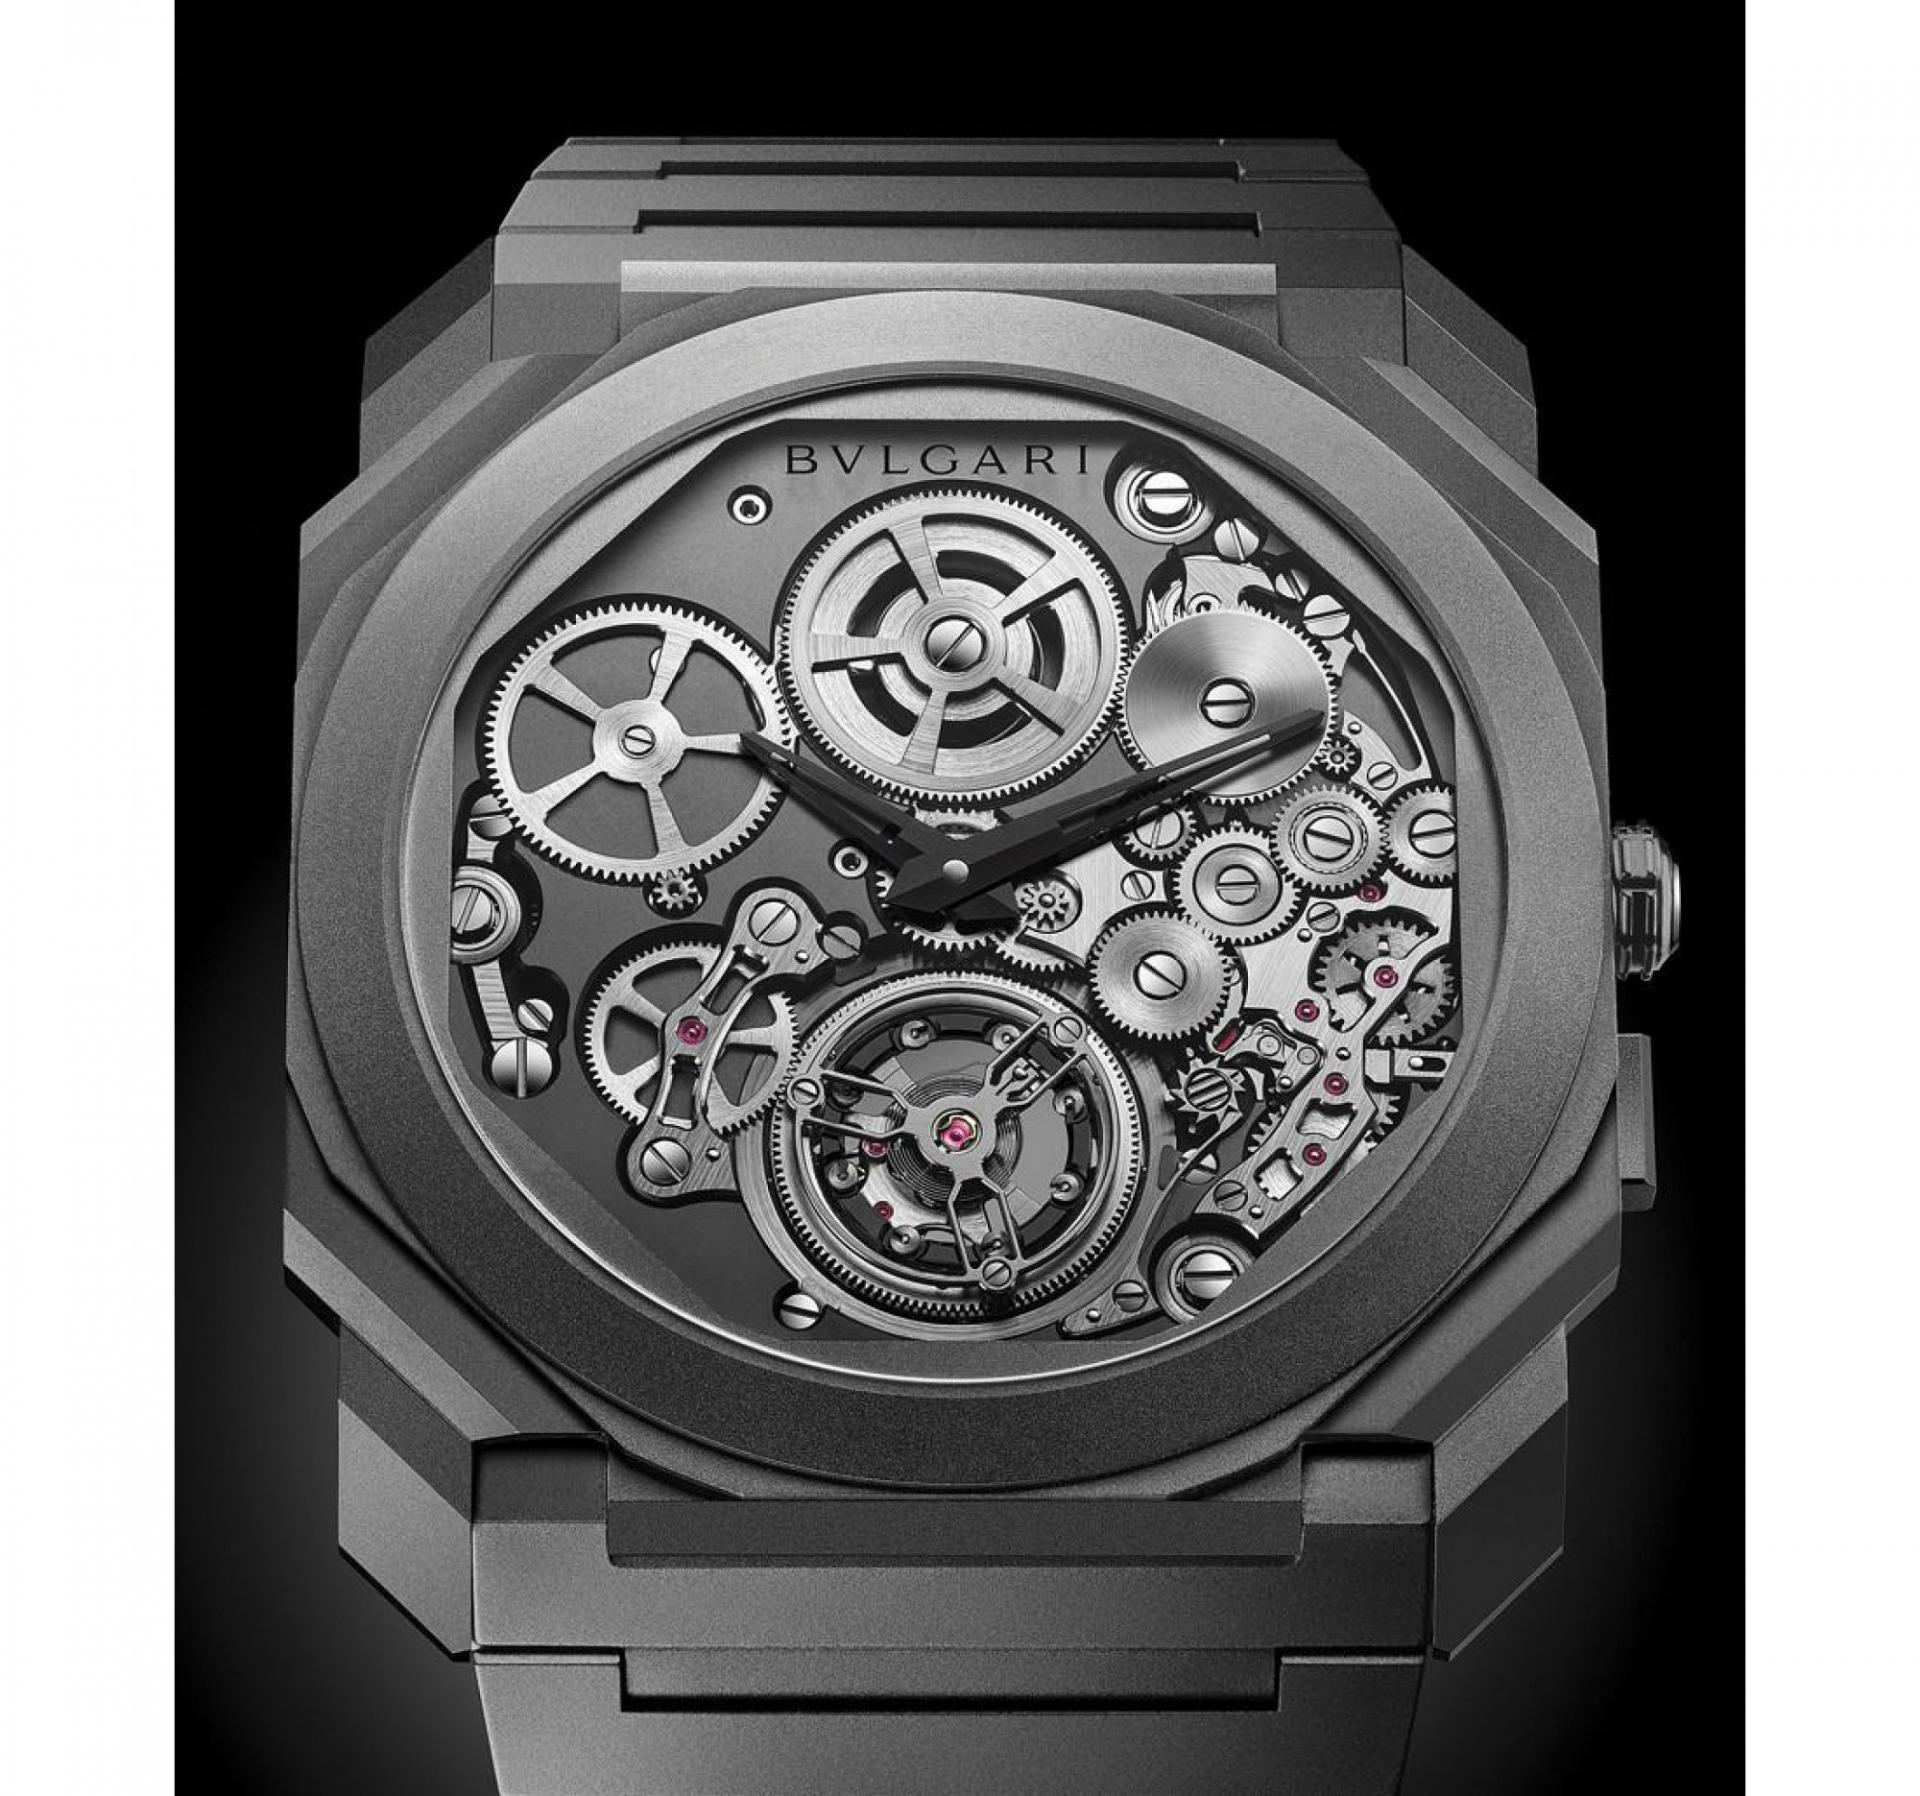 Octo Finissimo Tourbillon Automatic, POA, Bulgari